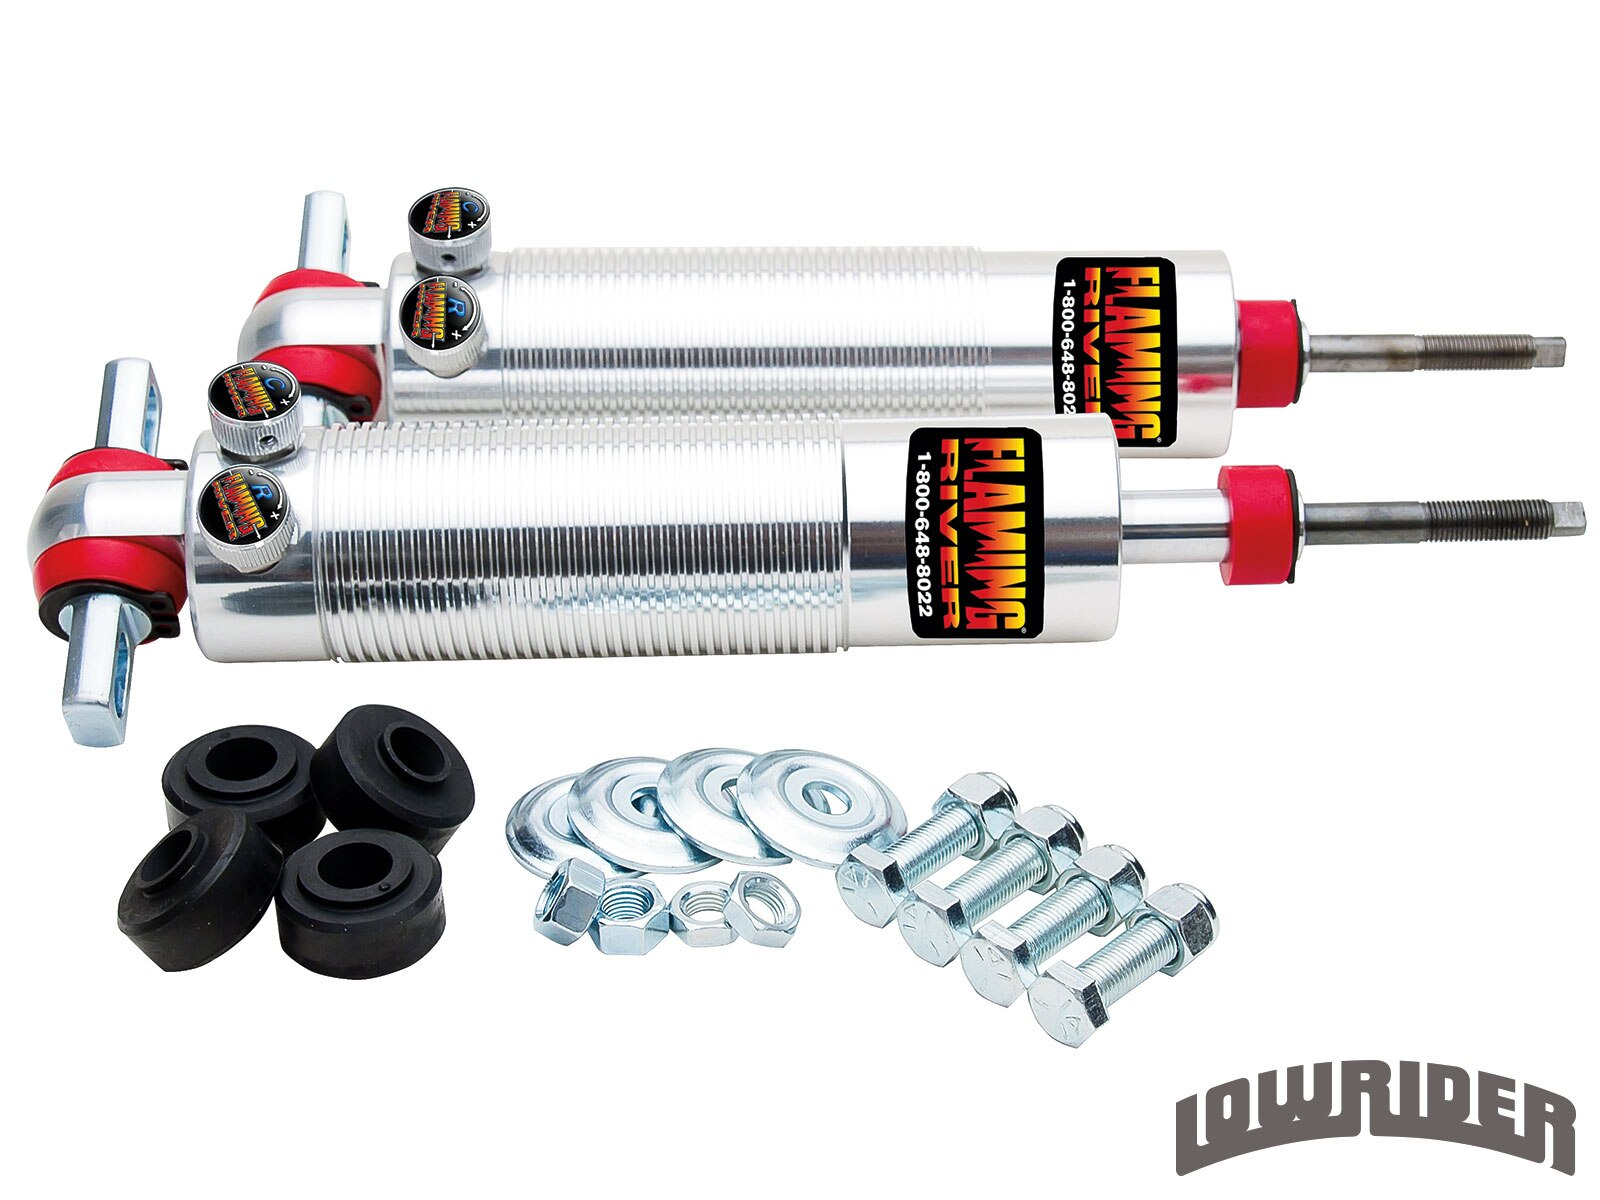 1303-lrmp-02-o-new-parts-and-accessories-flaming-river-aluminum-shocks1